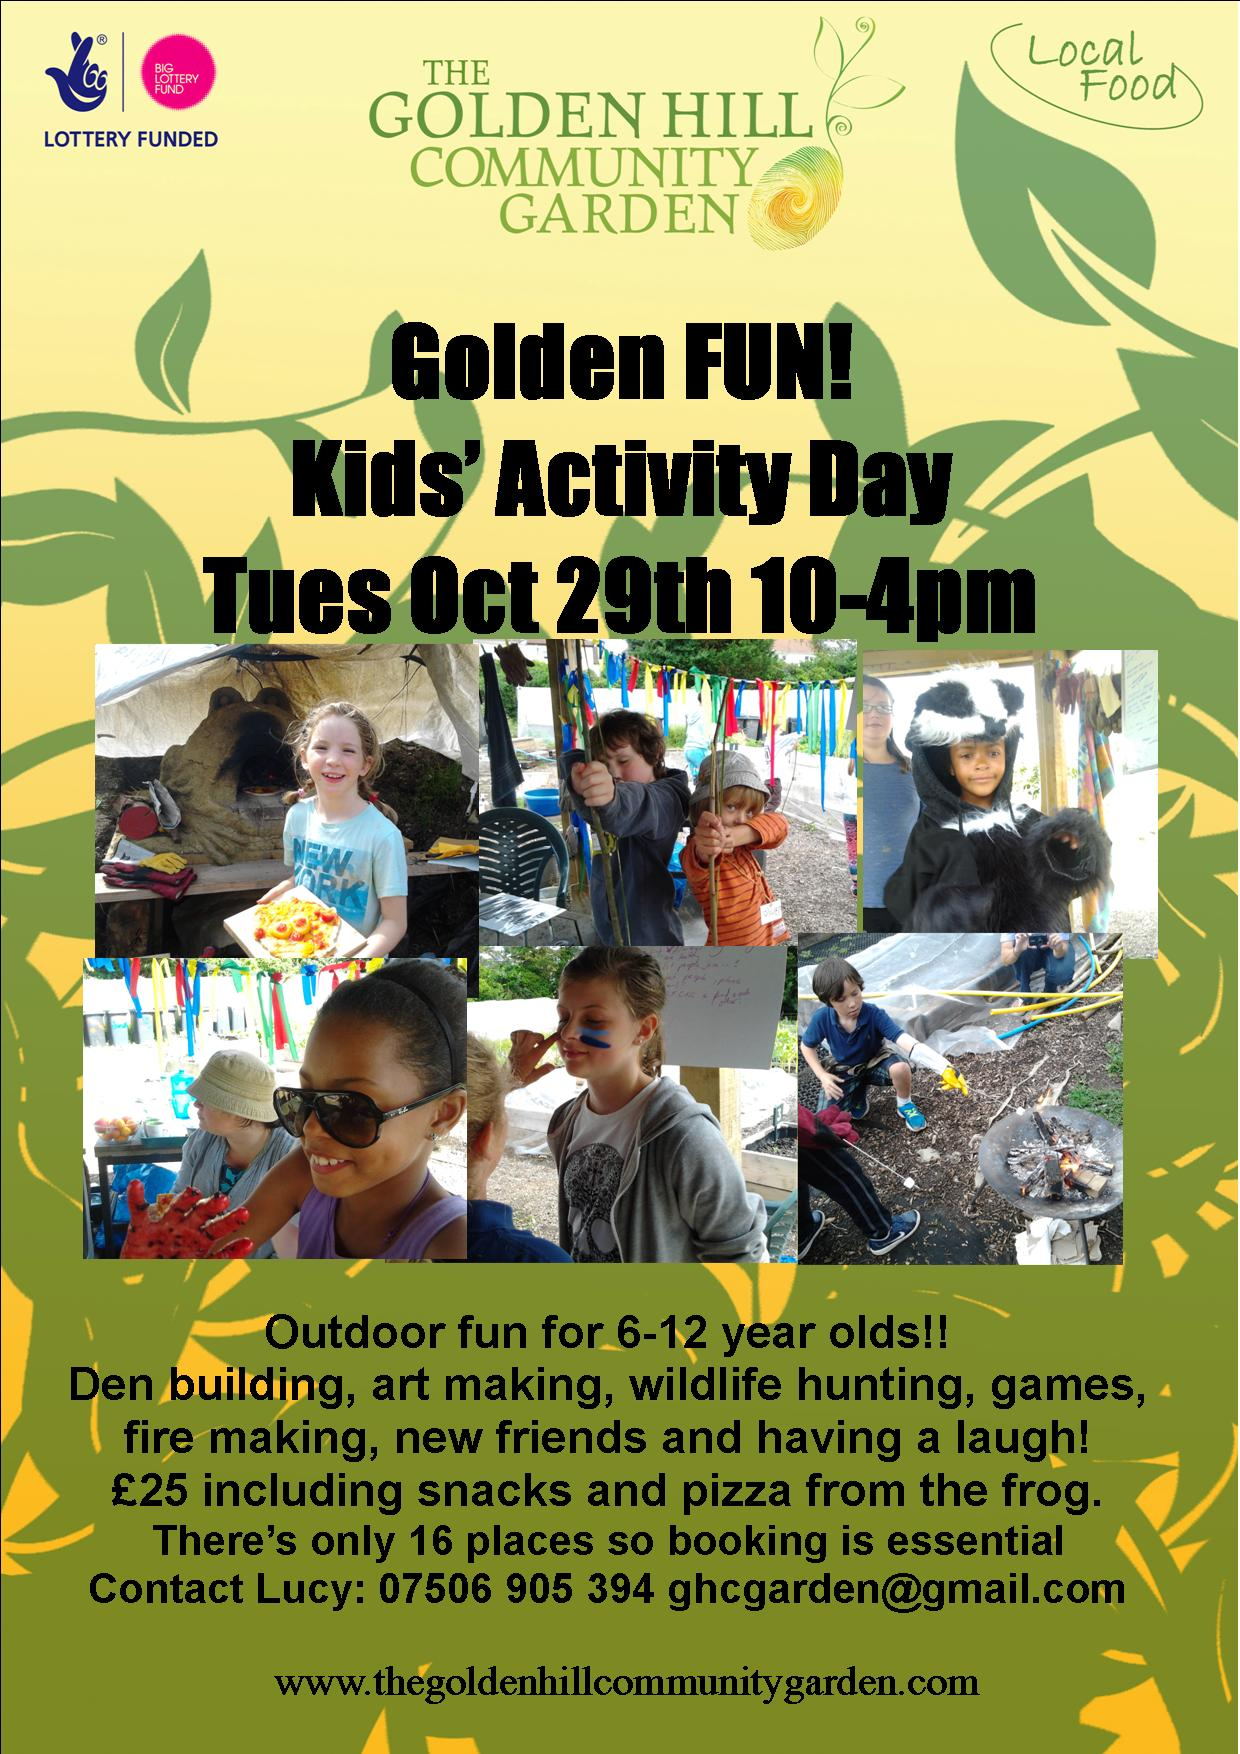 Oct 29th Activity day